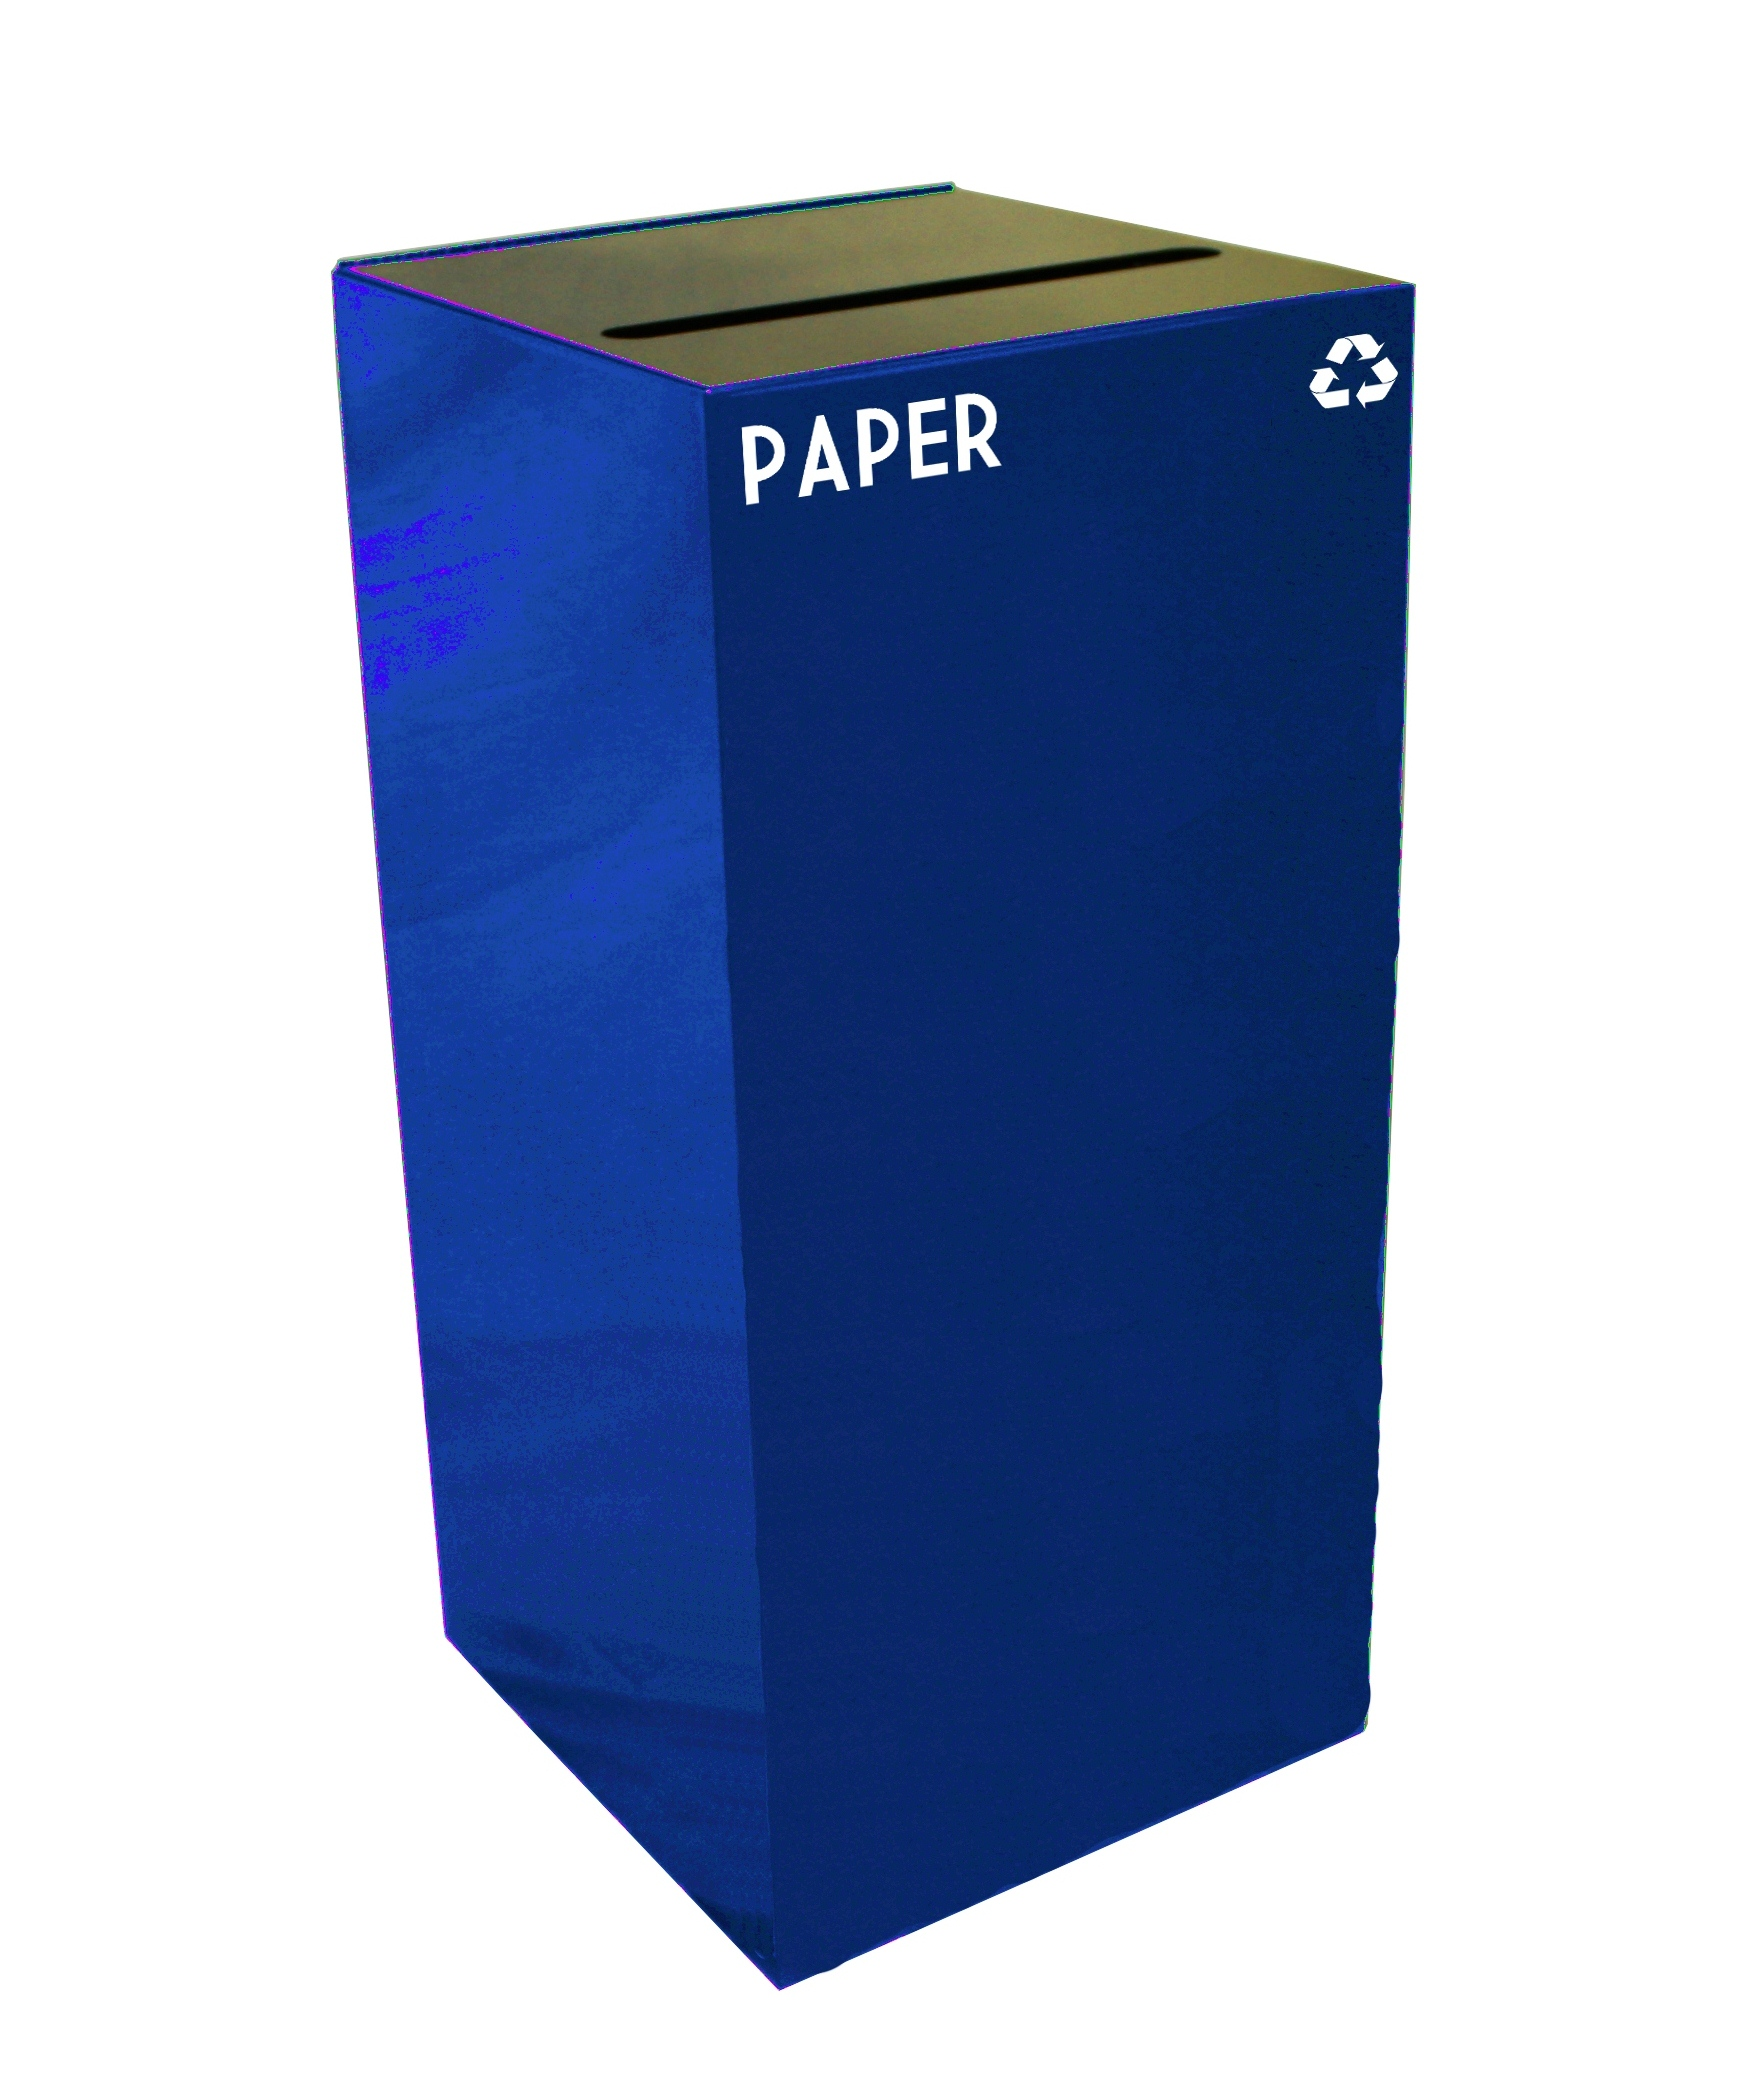 Square Recycling Paper Container